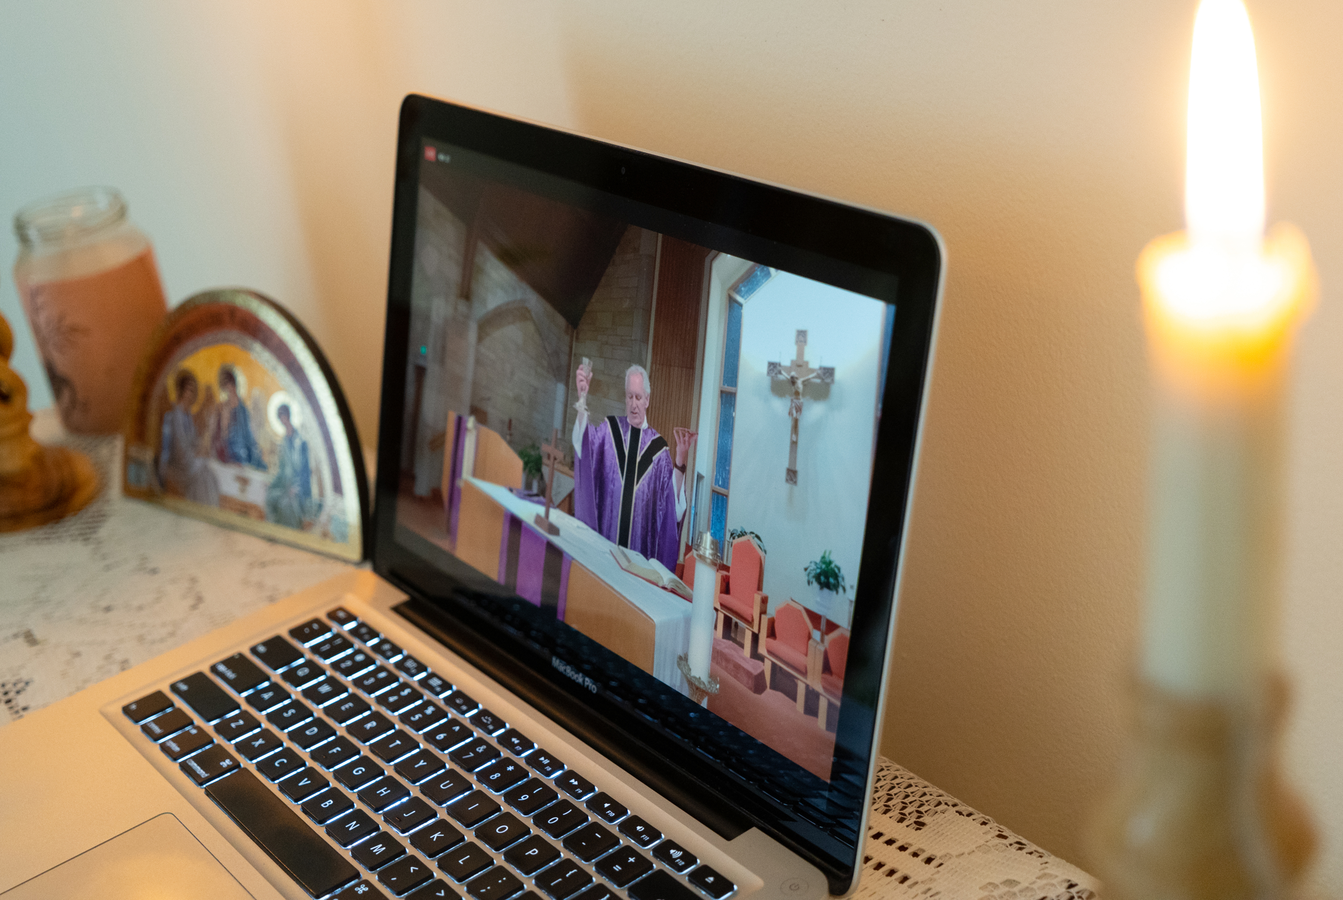 Best Laptop for Streaming Live Broadcasts